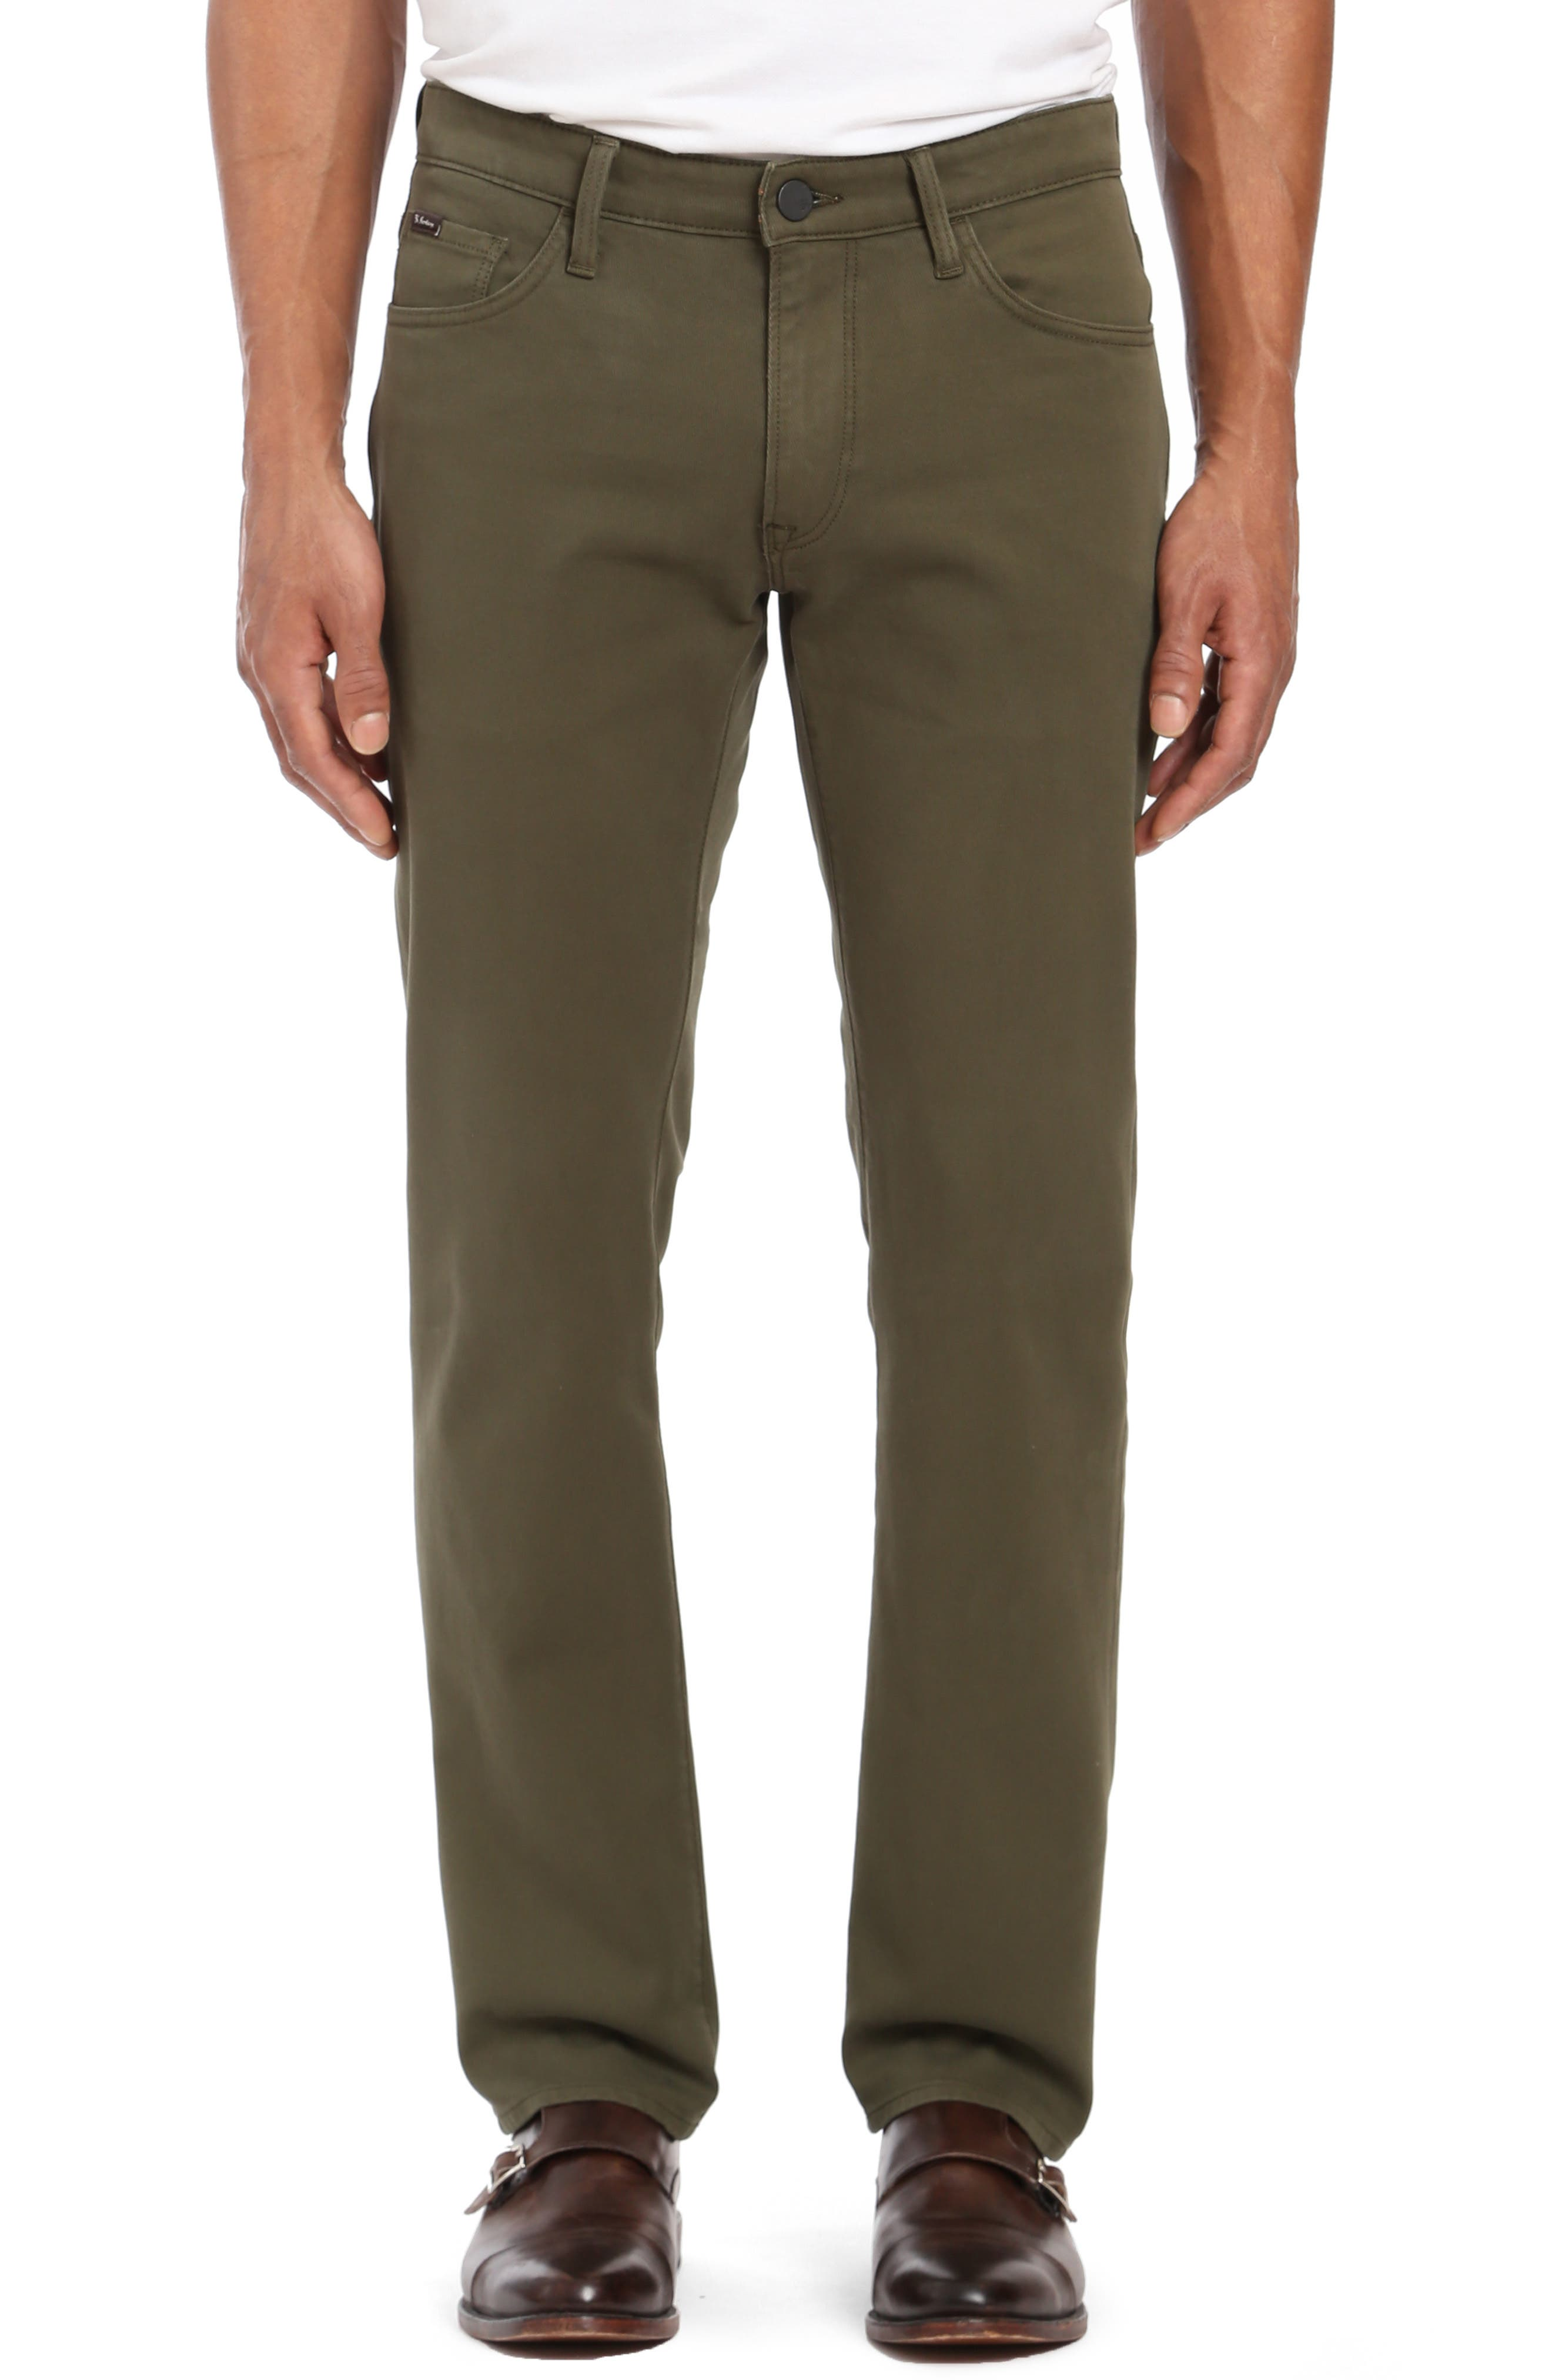 Courage Straight Leg Twill Pants,                             Main thumbnail 1, color,                             GREEN FINE TWILL